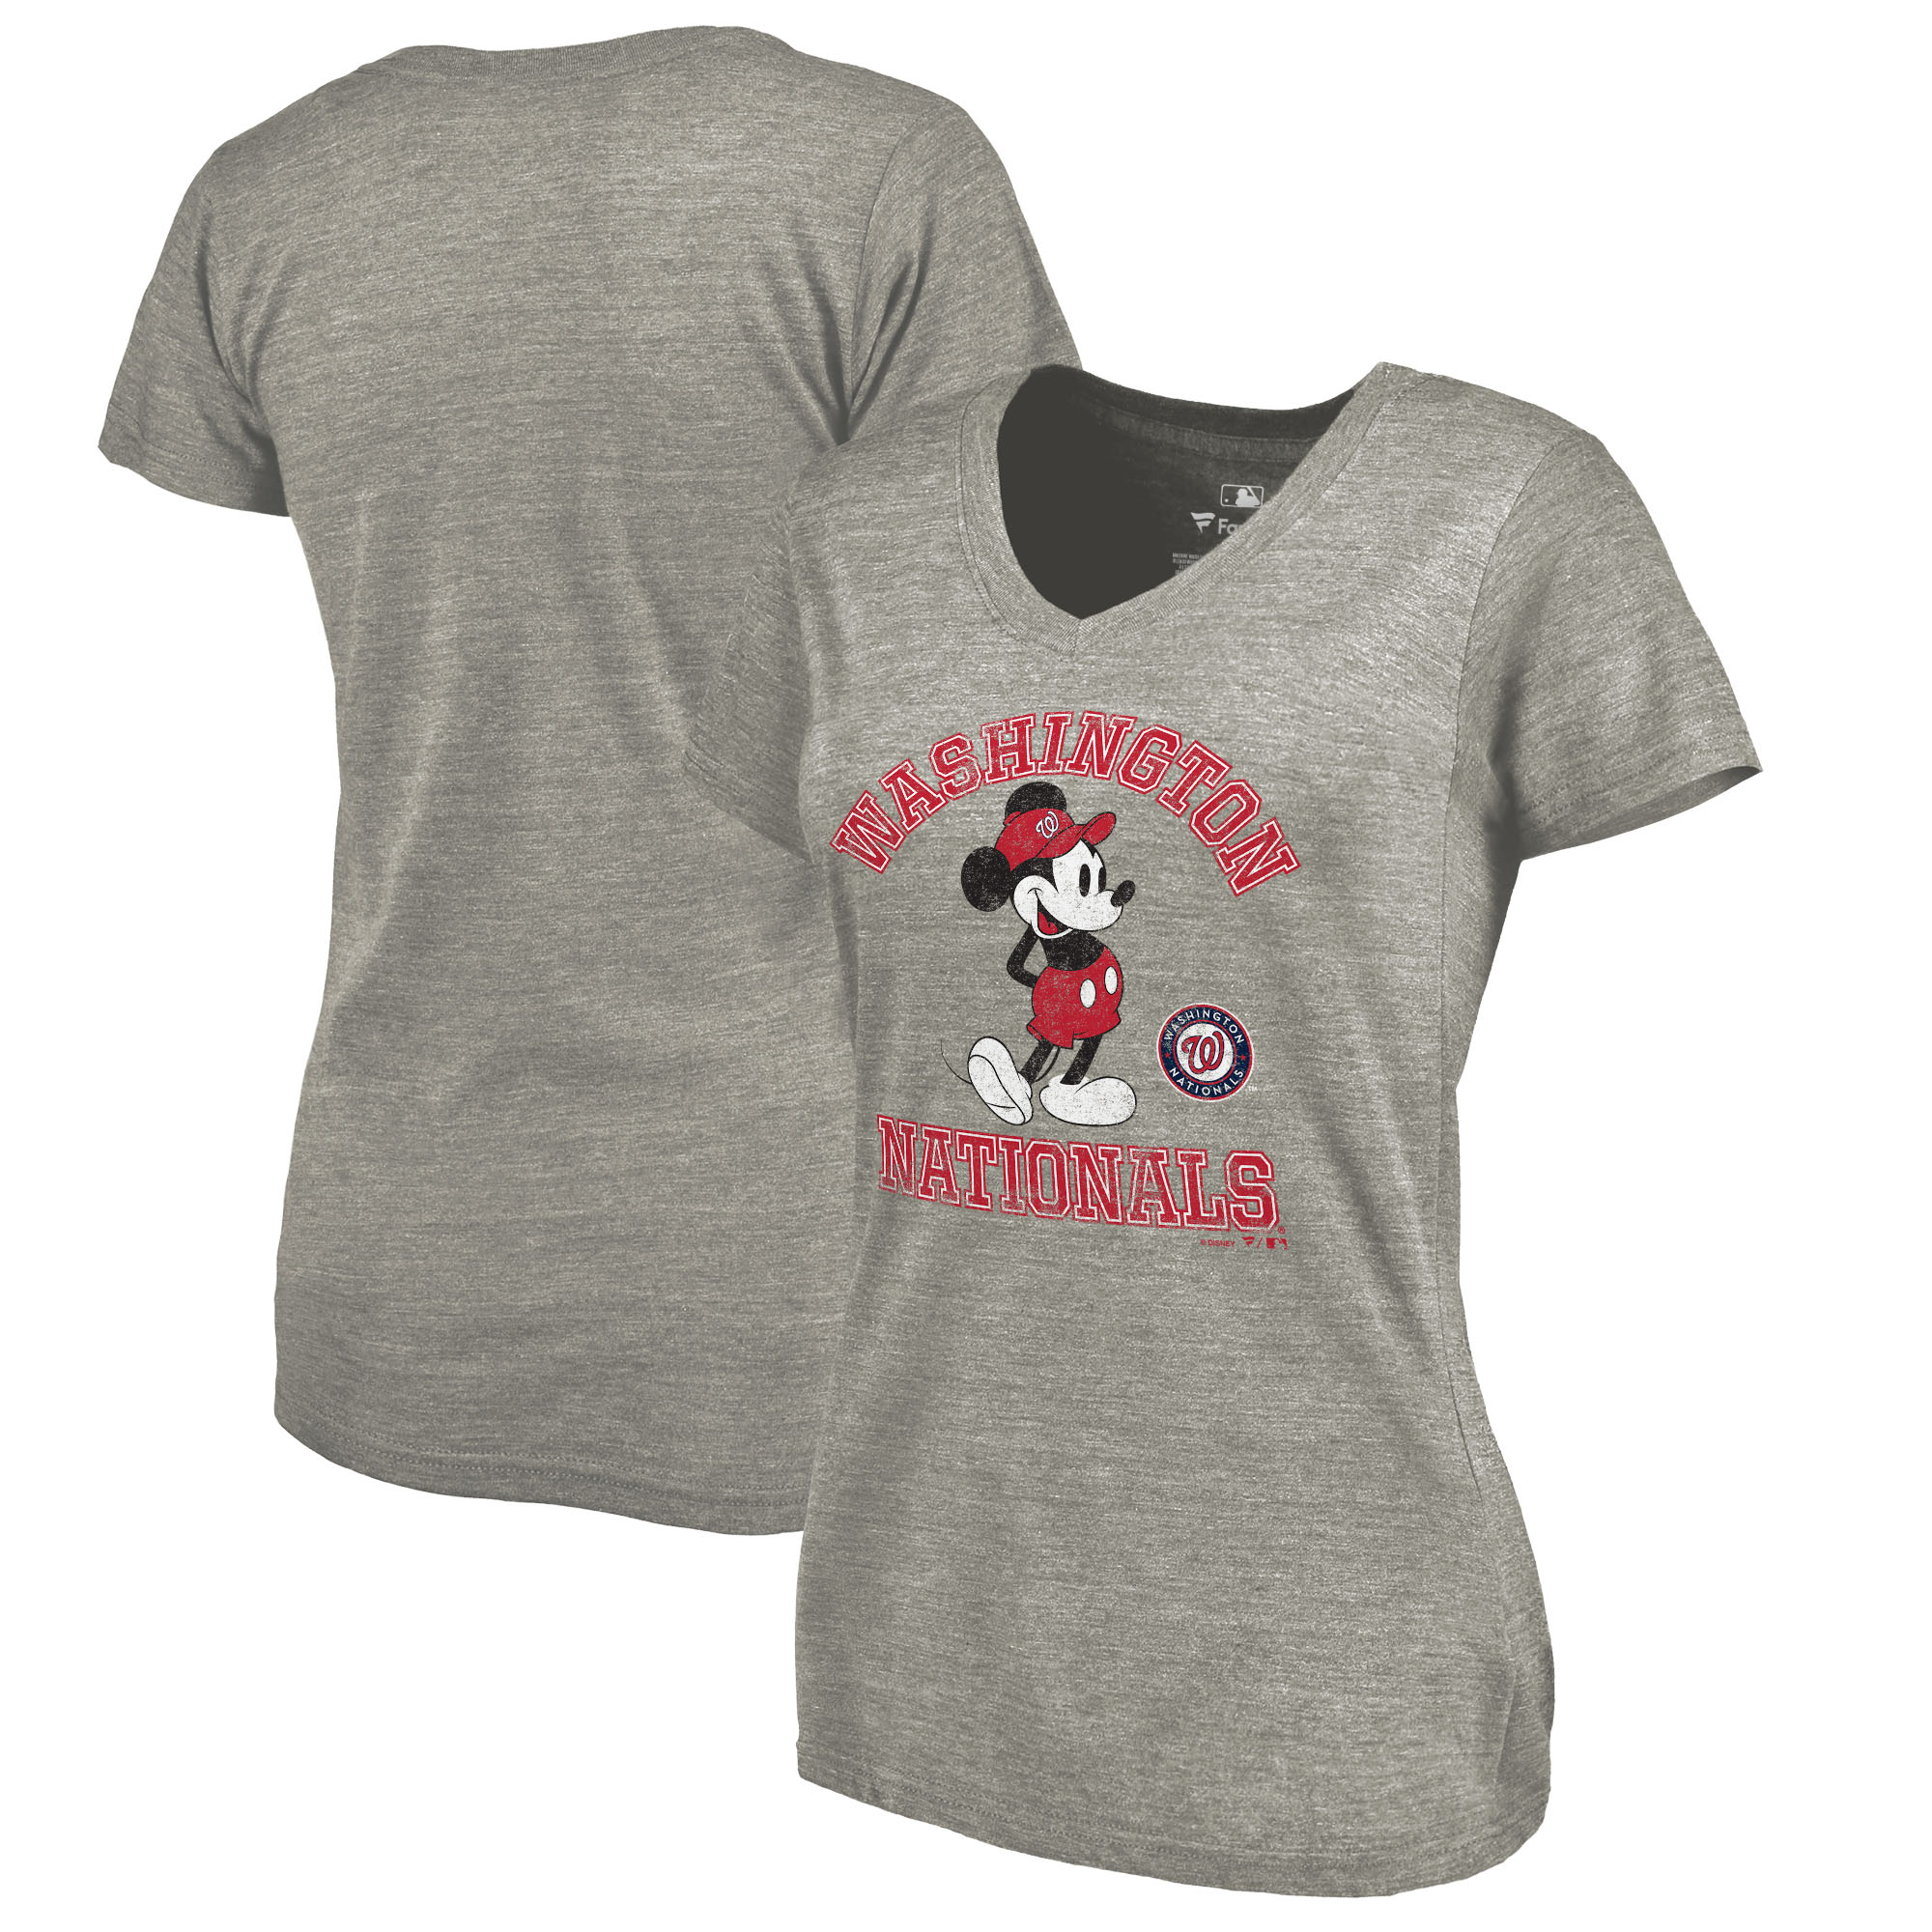 Washington Nationals Fanatics Branded Women's Disney MLB Tradition Tri-Blend V-Neck T-Shirt - Heathered Gray